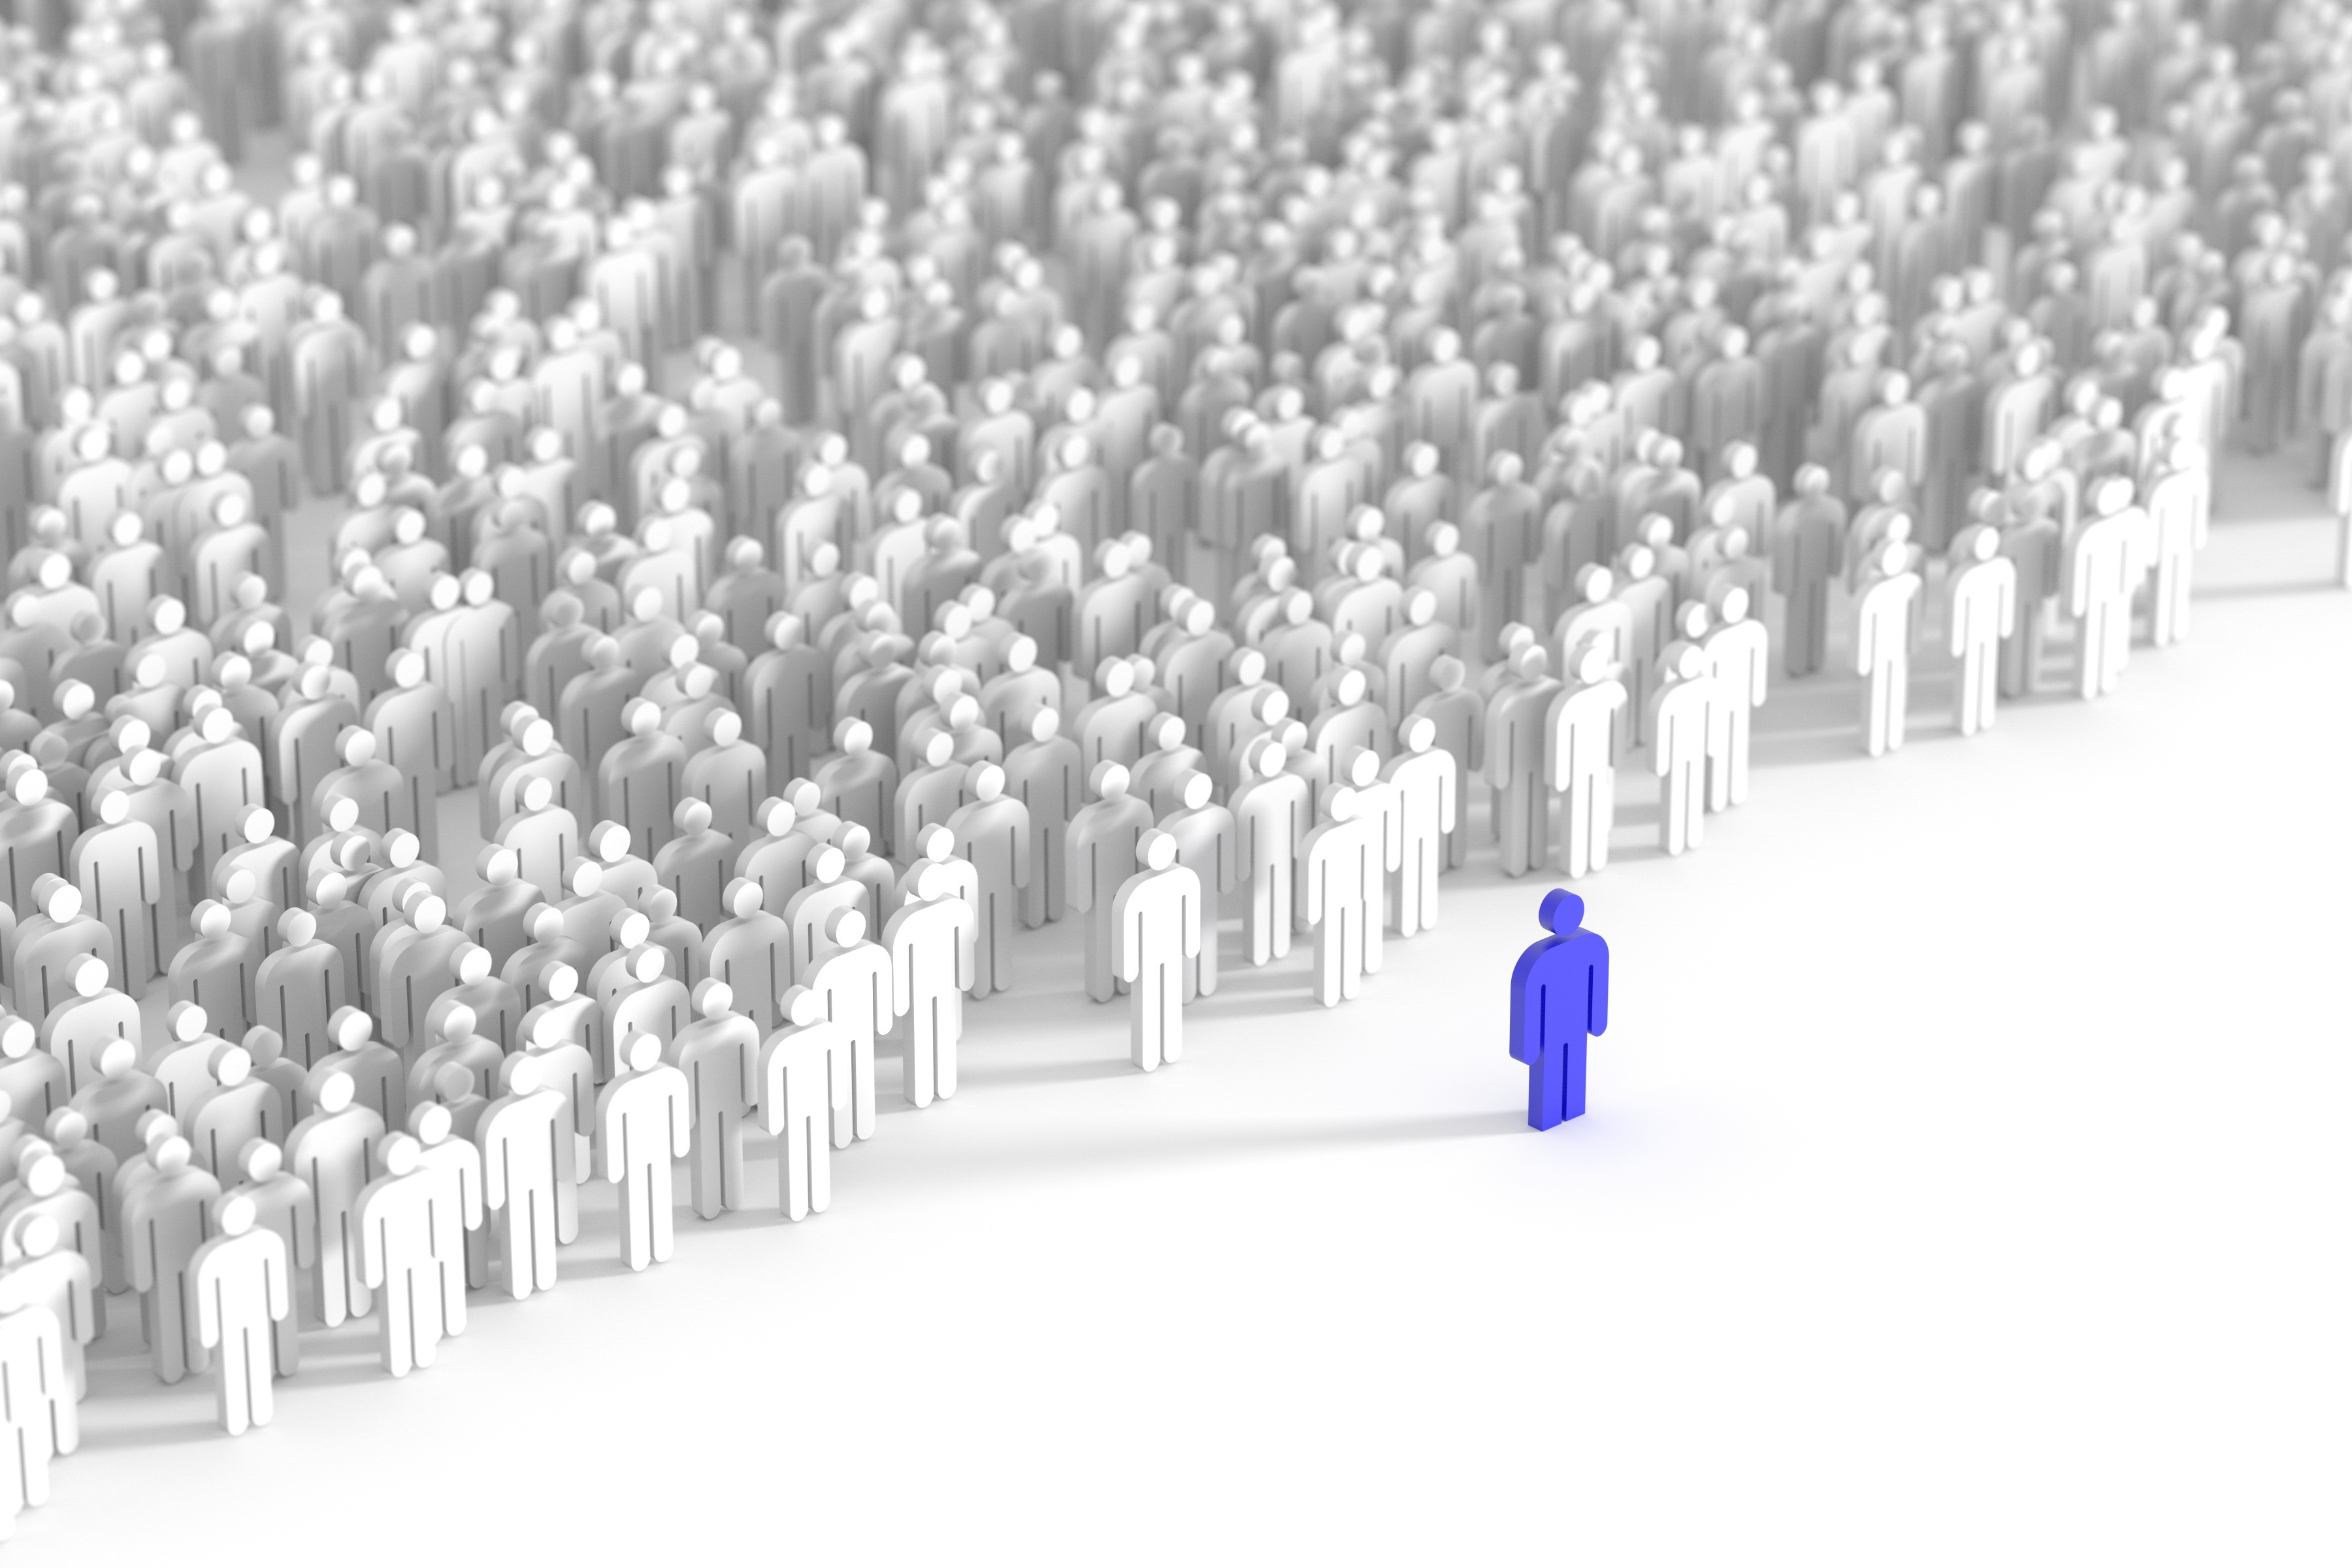 Crowdsourcing needs dedicated focus to yield great results